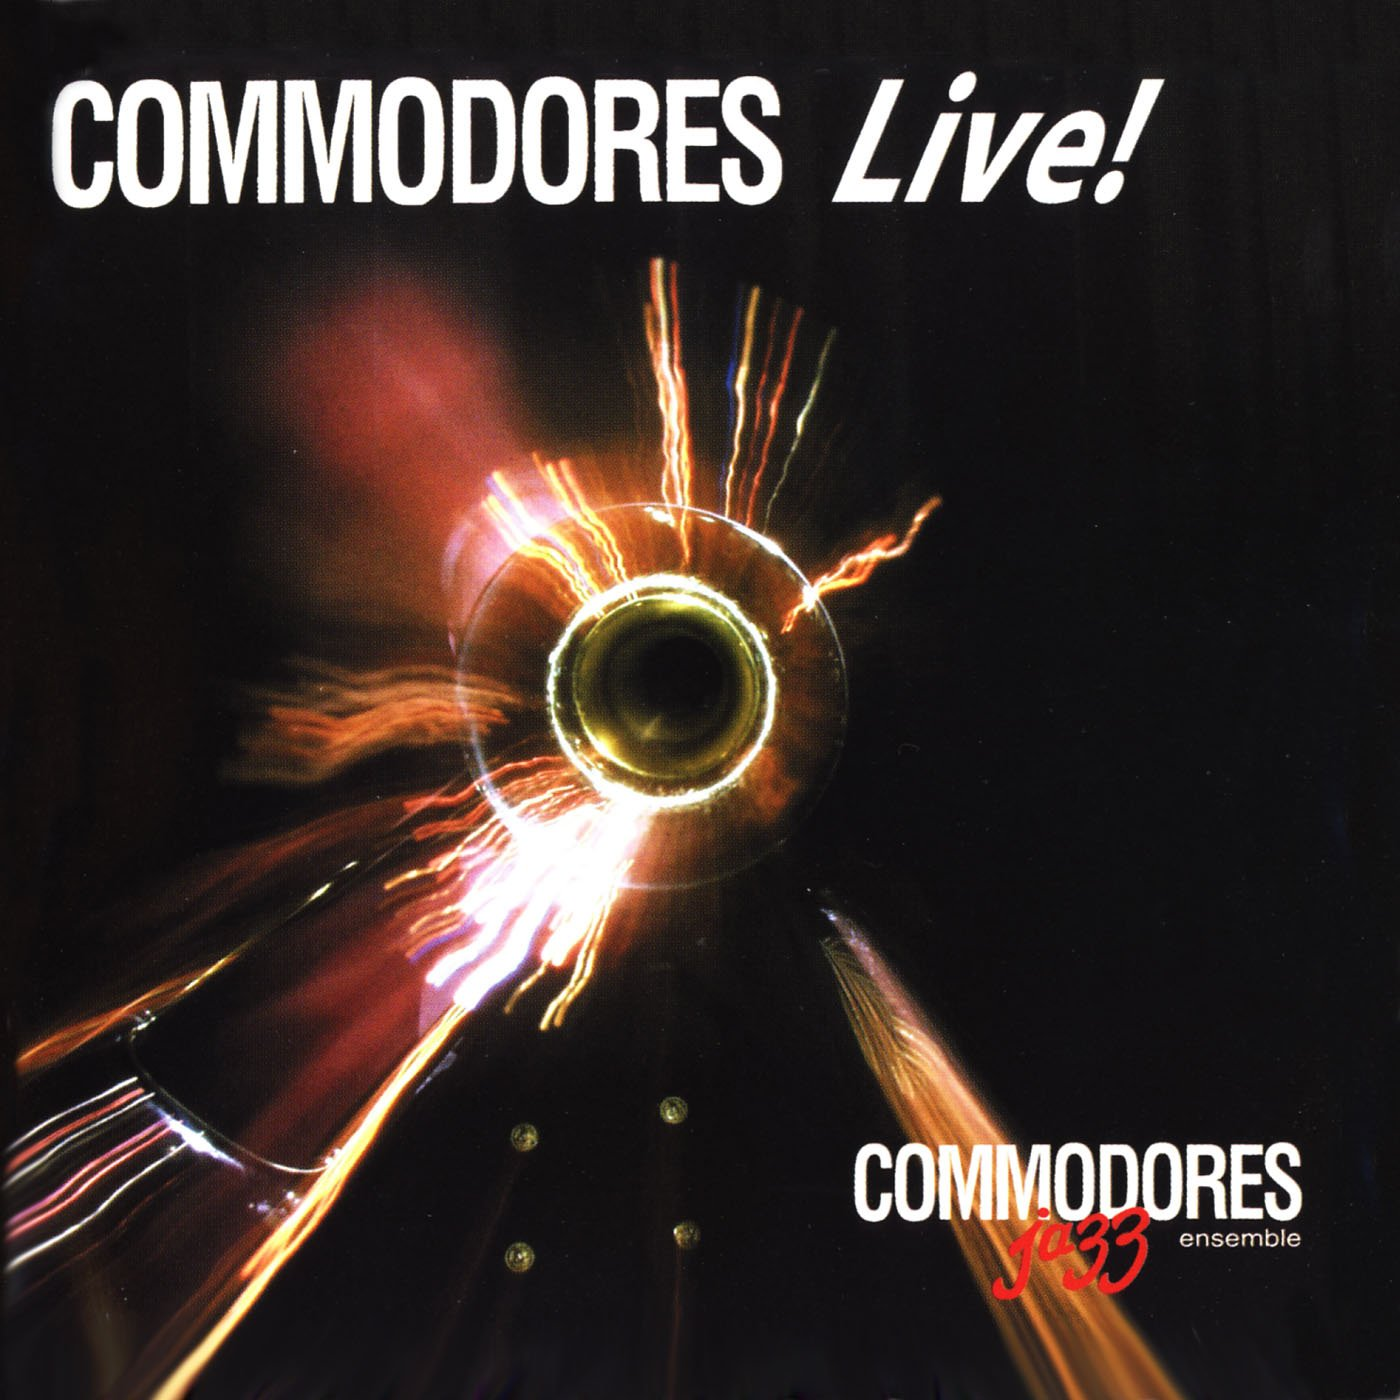 Commodores Live! by Altissimo!